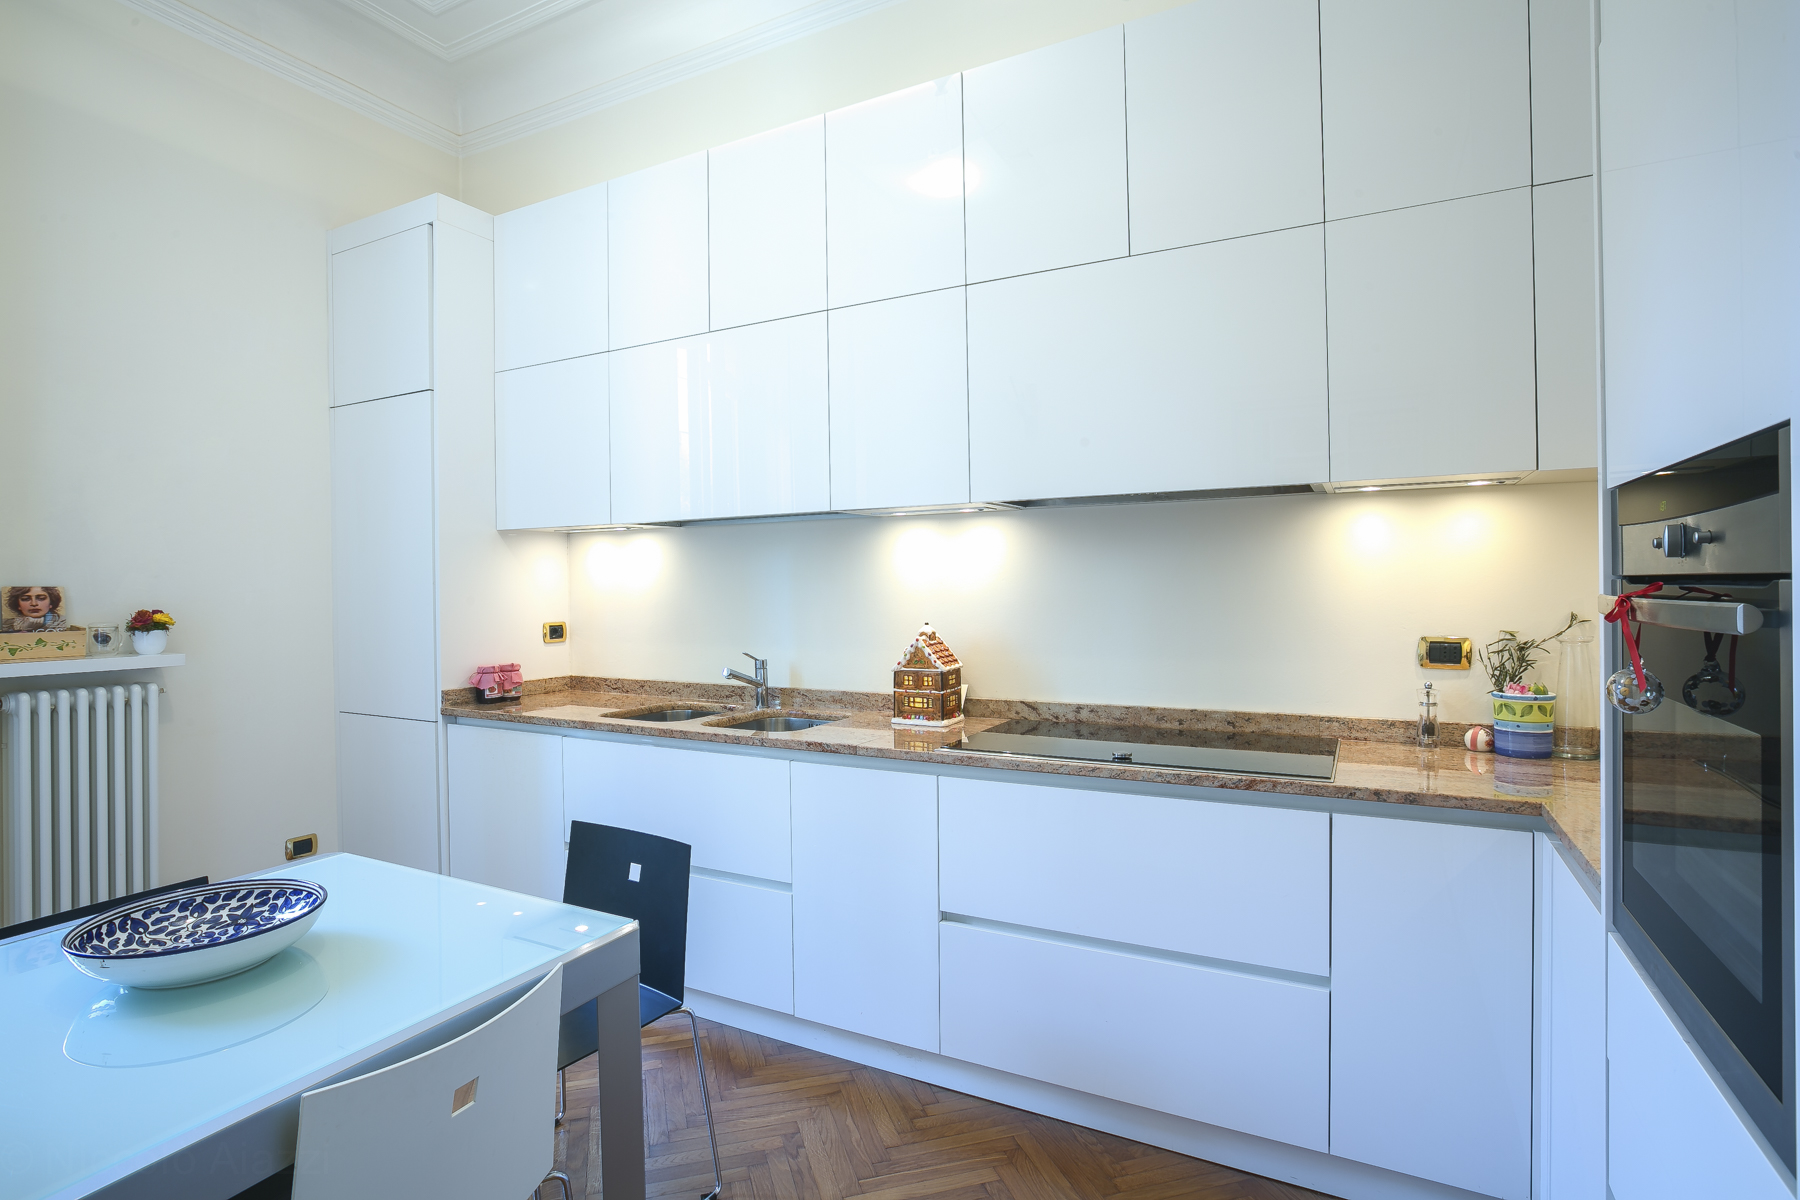 Additional photo for property listing at Renovated apartment in Fiera zone via Mosè Bianchi Milano, Milan 20149 Italie